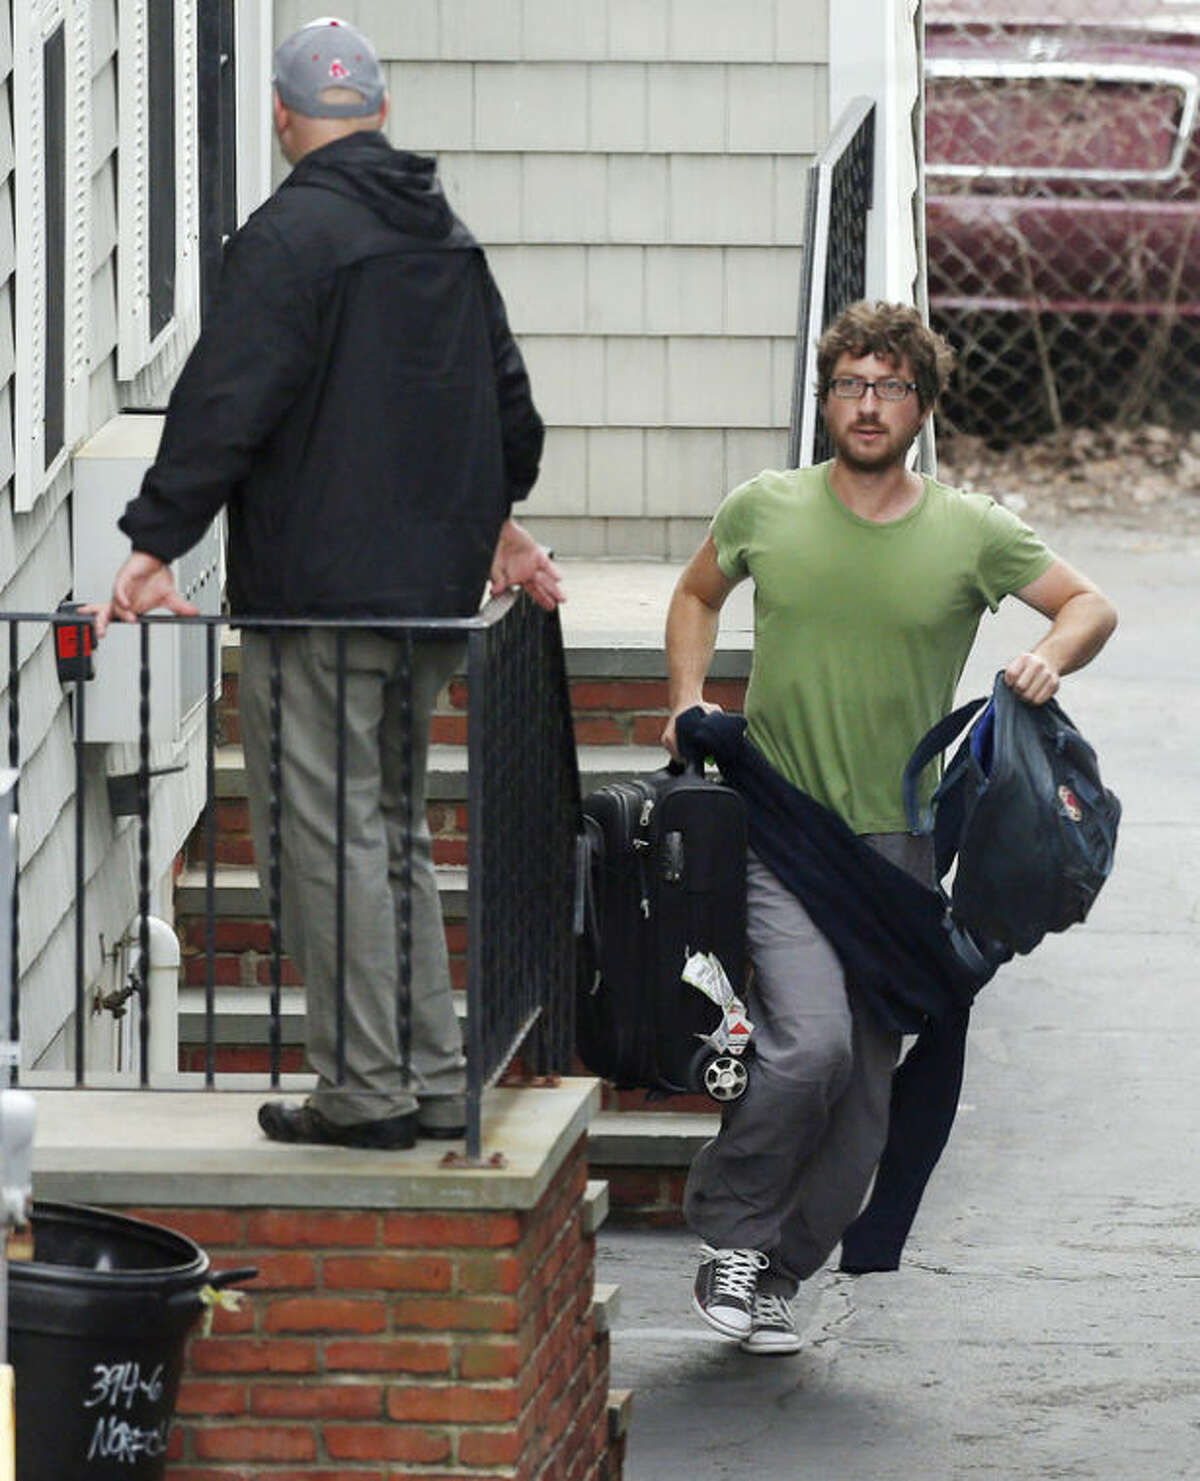 A resident evacuates as police go door-to-door on Norfolk Street in search of a suspect in the Boston Marathon bombings in Cambridge, Mass., Friday, April 19, 2013. Two suspects in the Boston Marathon bombing killed an MIT police officer, injured a transit officer in a firefight and threw explosive devices at police during a getaway attempt in a long night of violence that left one of them dead and another still at large Friday, authorities said as the manhunt intensified for a young man described as a dangerous terrorist.(AP Photo/Michael Dwyer)